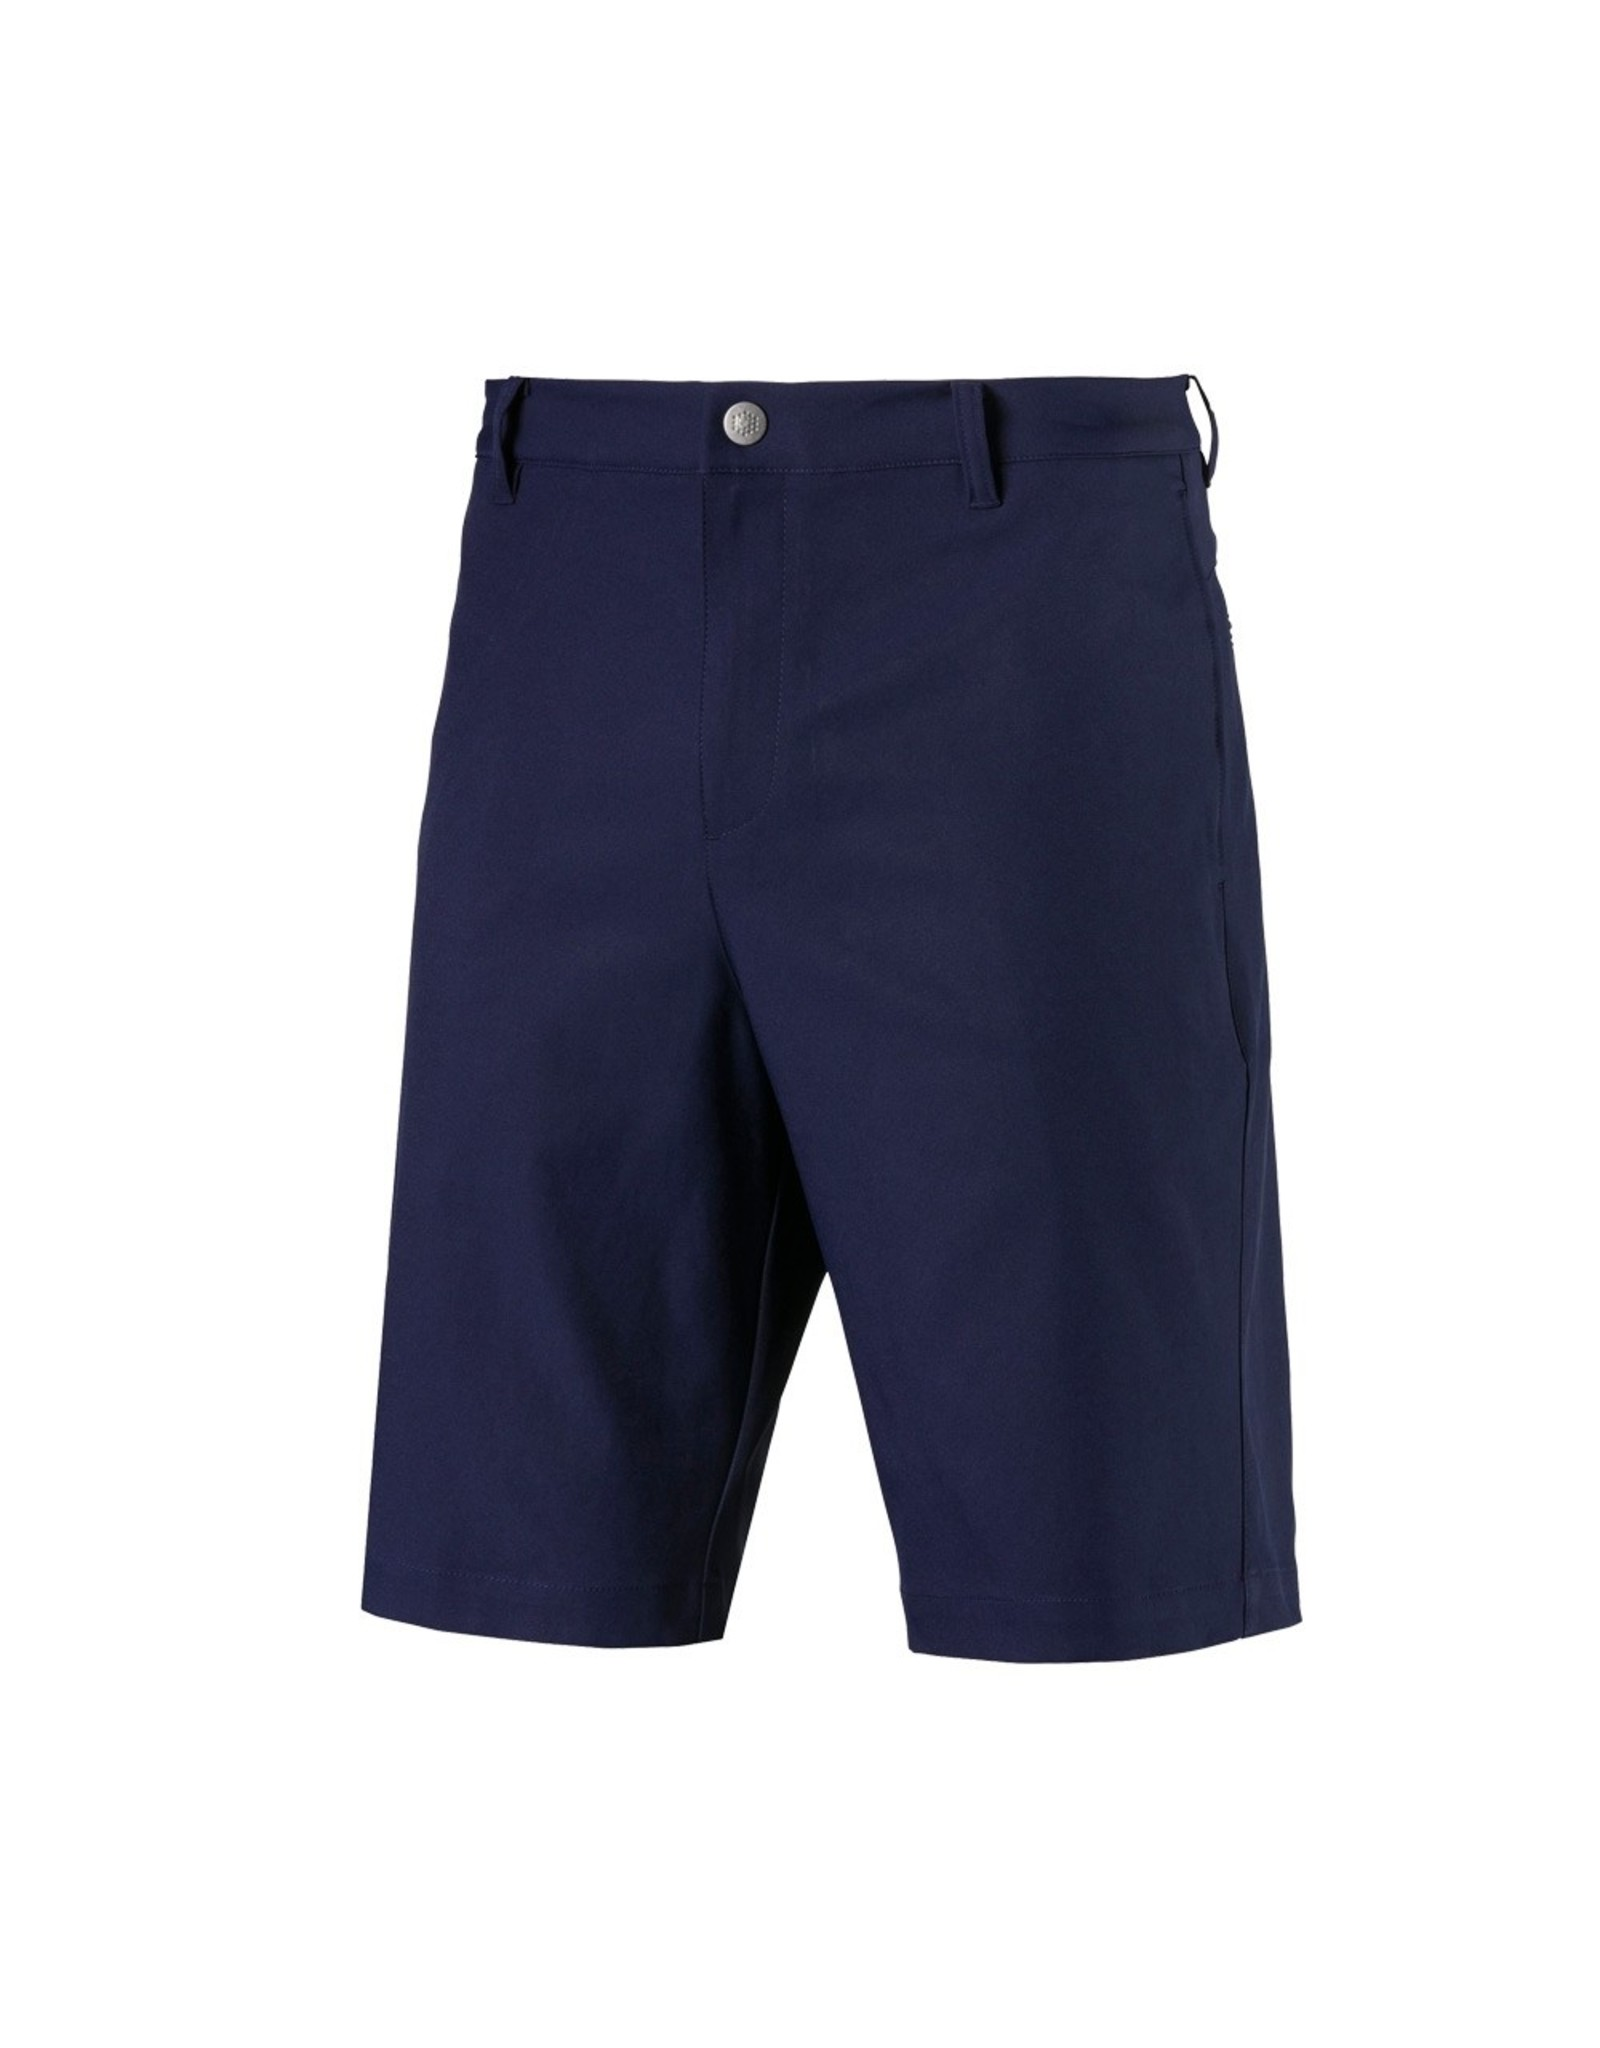 Puma Golf Puma Men's Jackpot Shorts